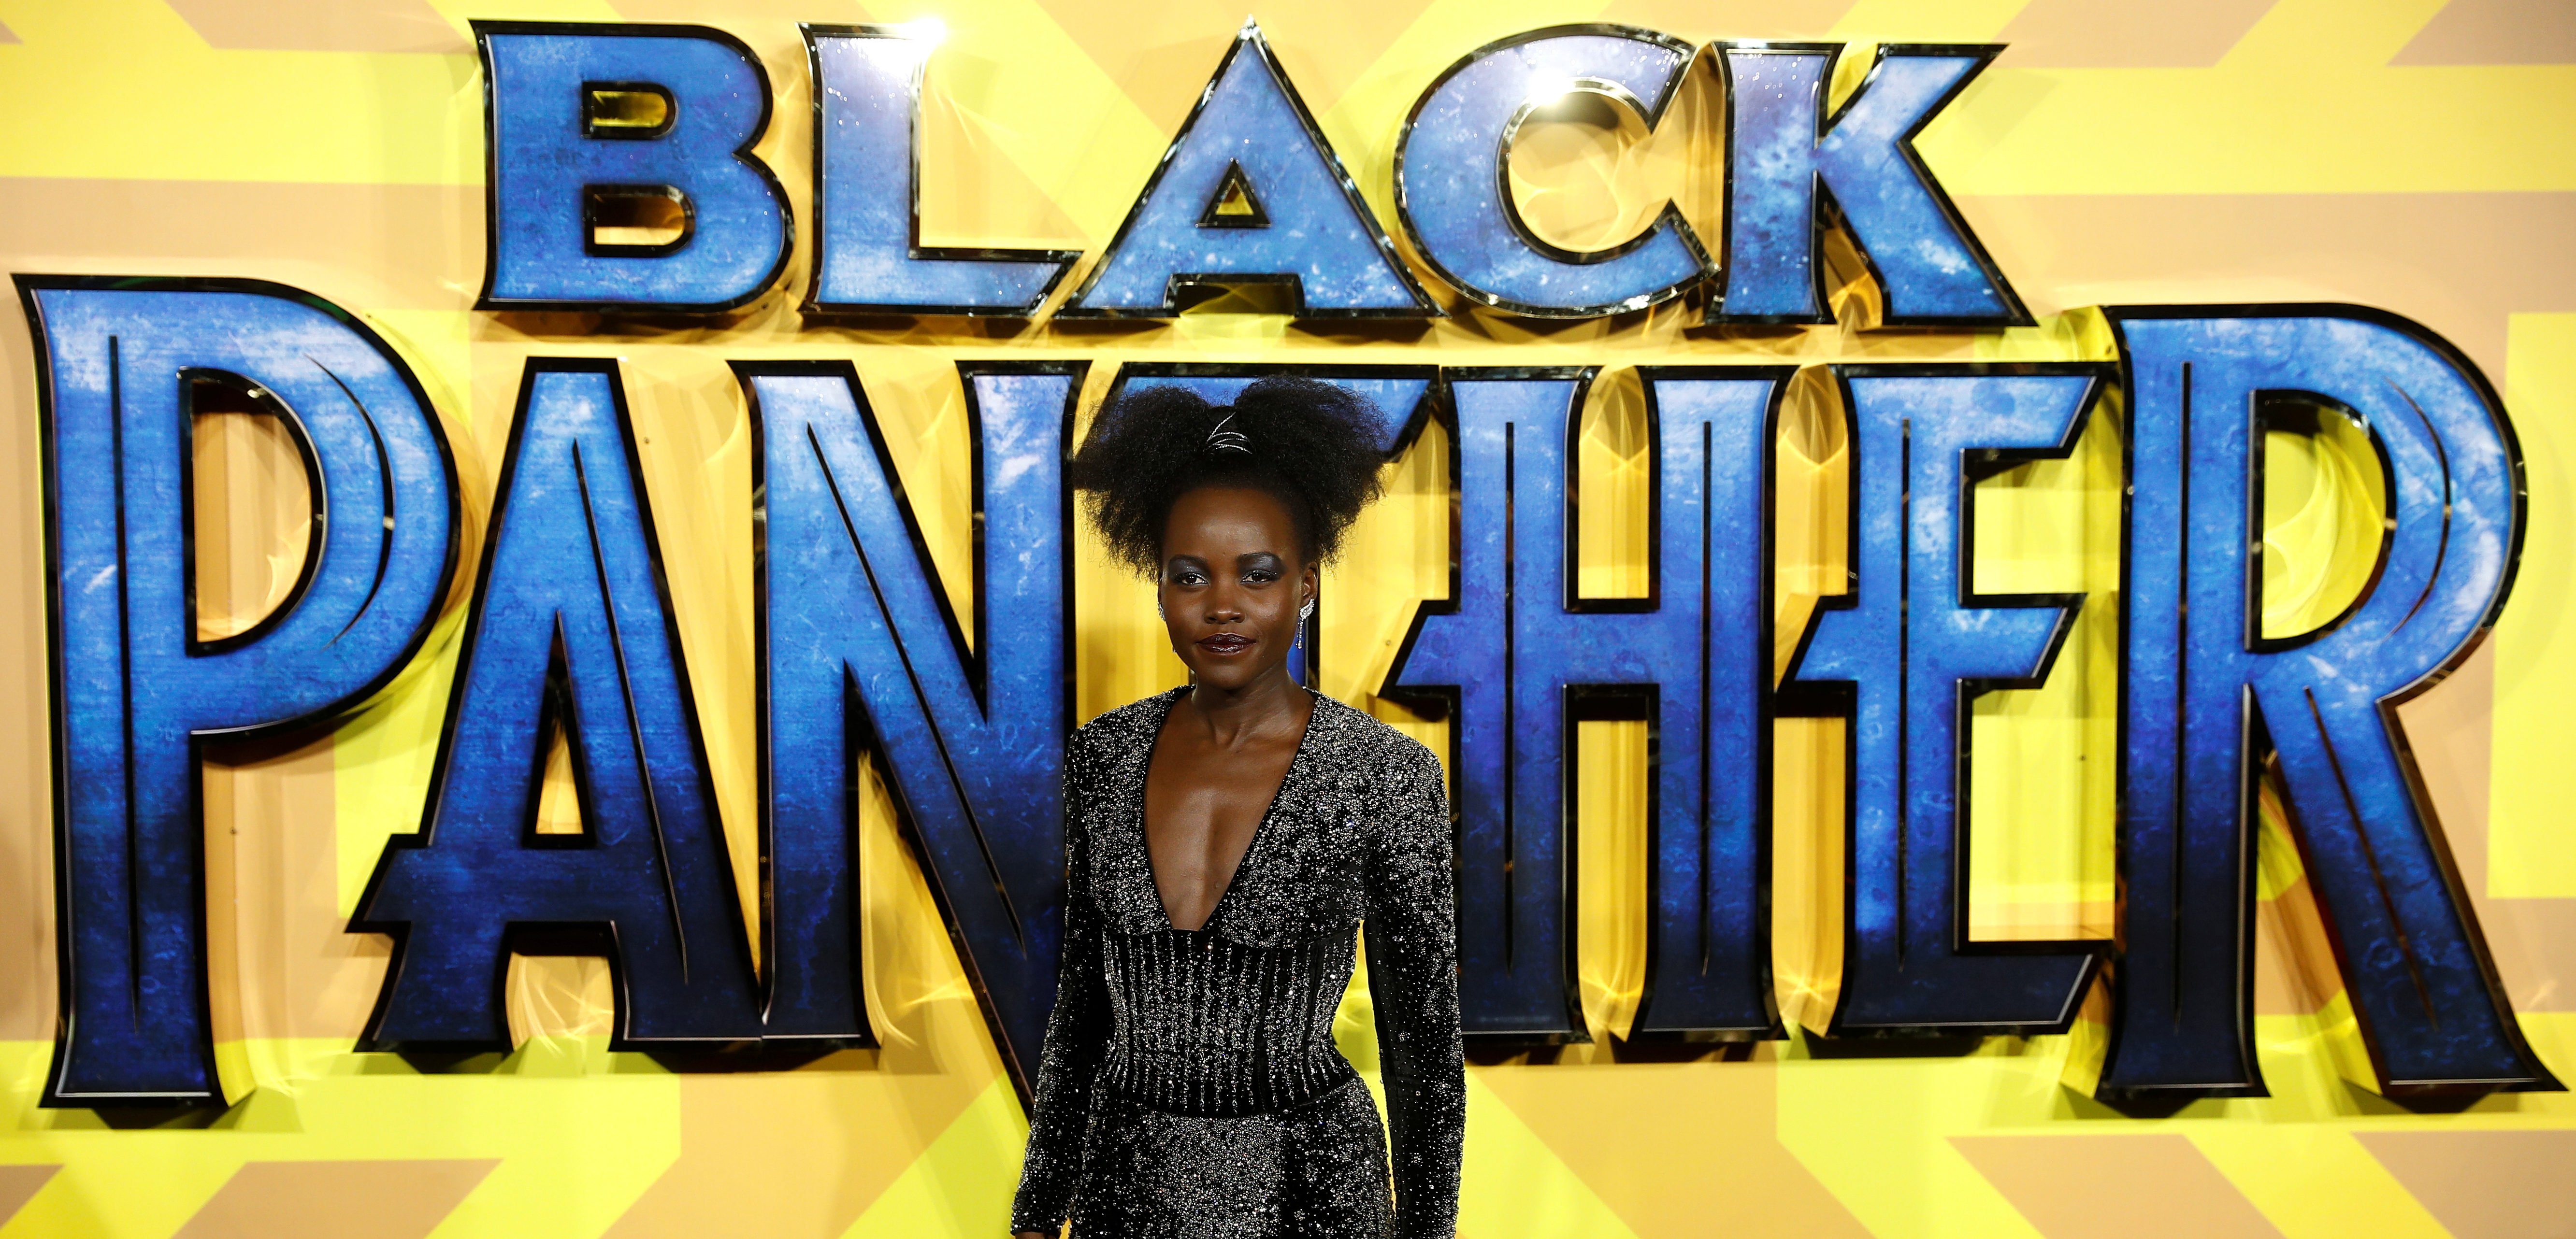 Actor Lupita Nyong'o arrives at the premiere of the new Marvel superhero film 'Black Panther' in London, Britain February 8, 2018. REUTERS/Peter Nicholls